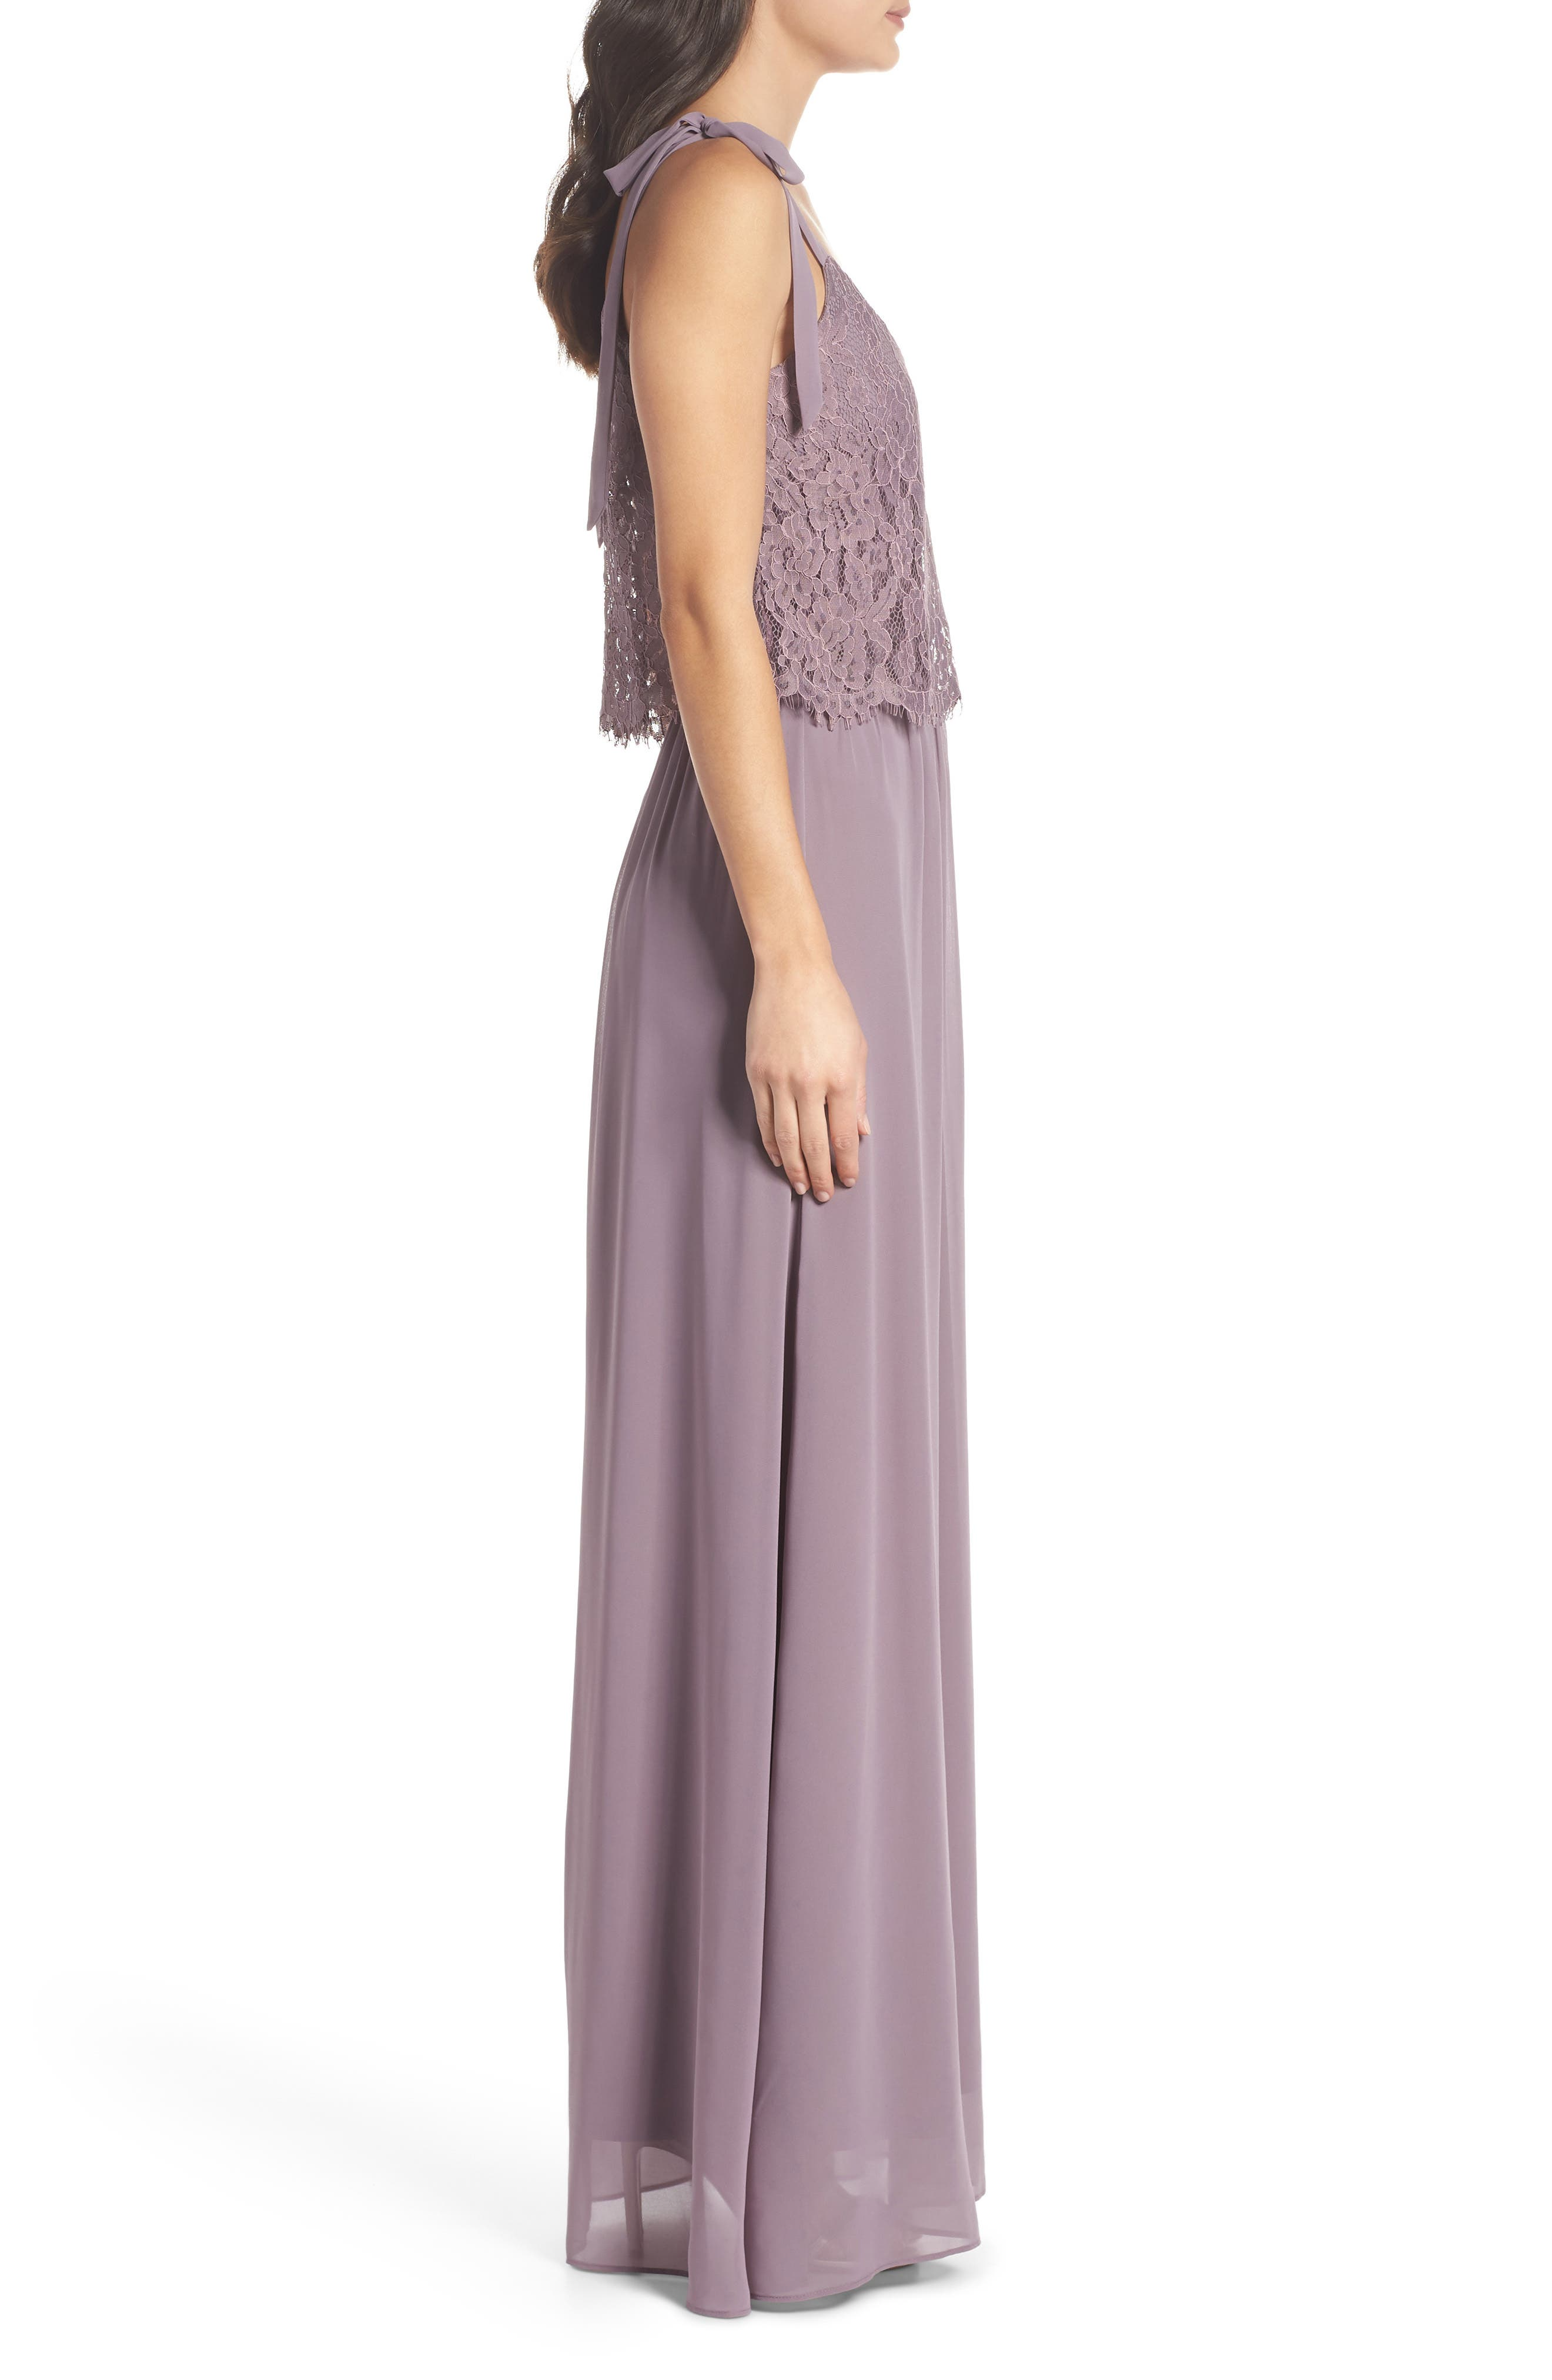 Koko Tie Shoulder Lace Bodice Gown,                             Alternate thumbnail 3, color,                             LILAC